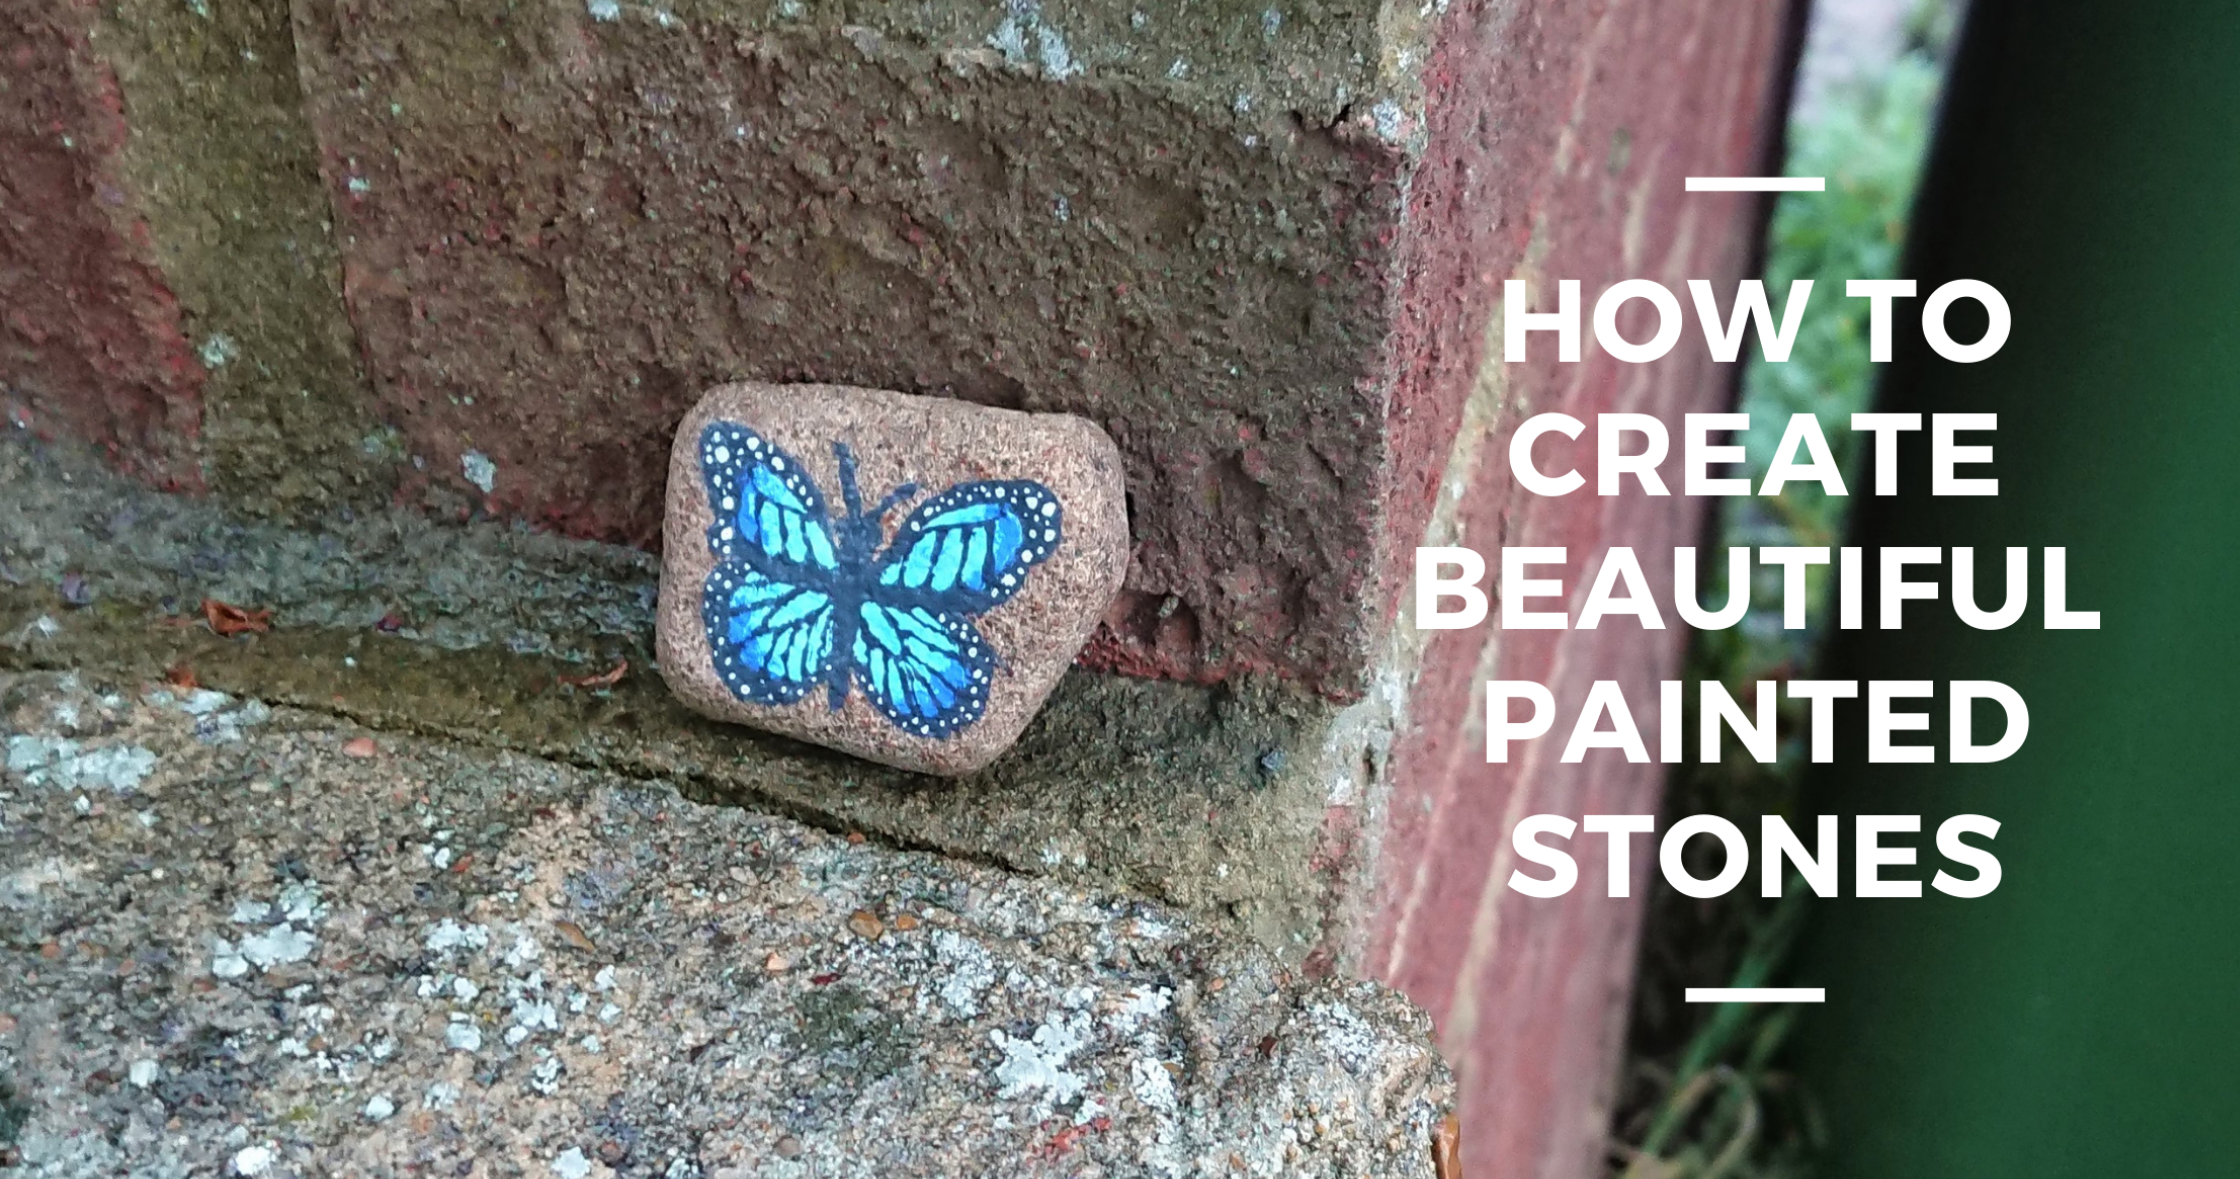 How To Create Beautiful Painted Stones